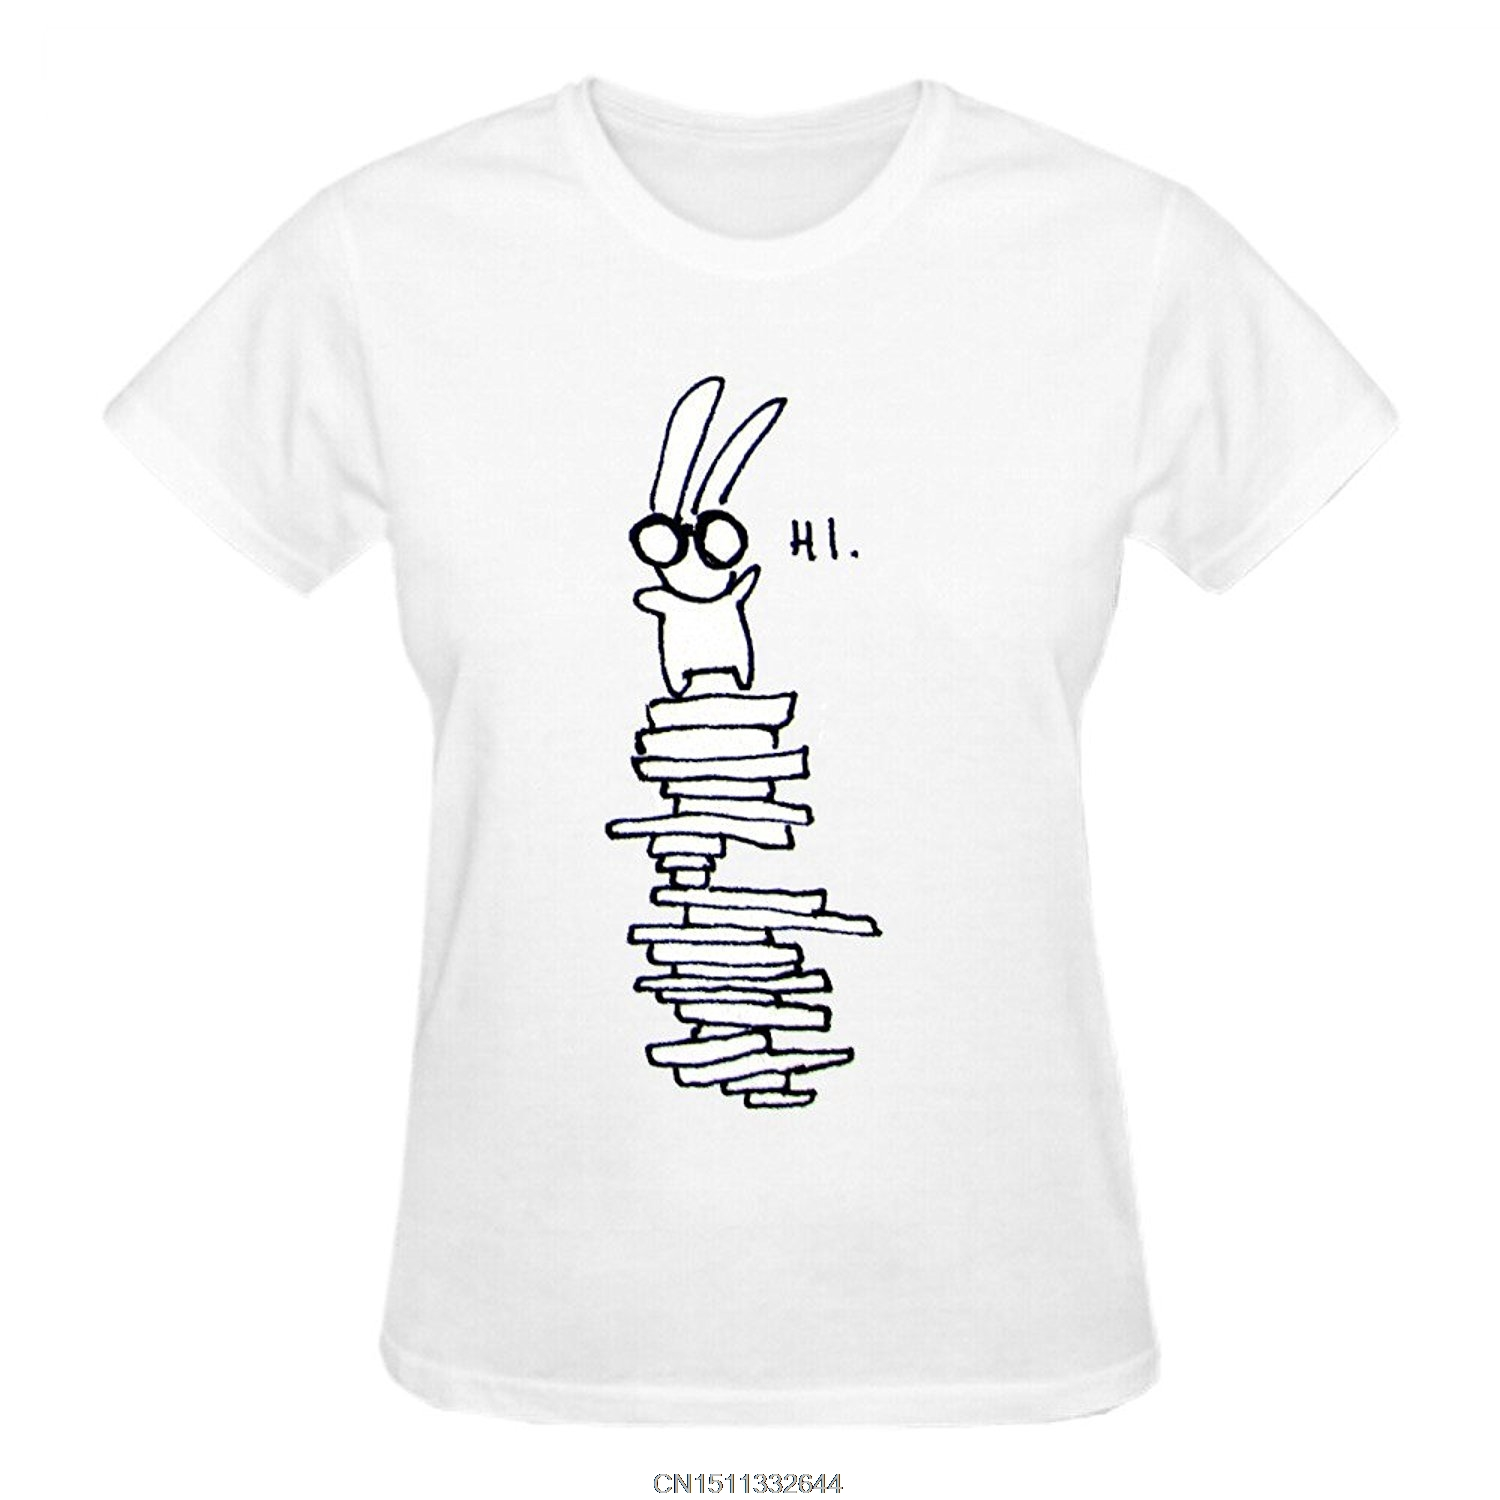 Design your own t-shirt for cheap price - Jzecco Premium Fitted Quality Tee Shirts Bunny Glasses Says Hi Design Your Own T Shirts Women